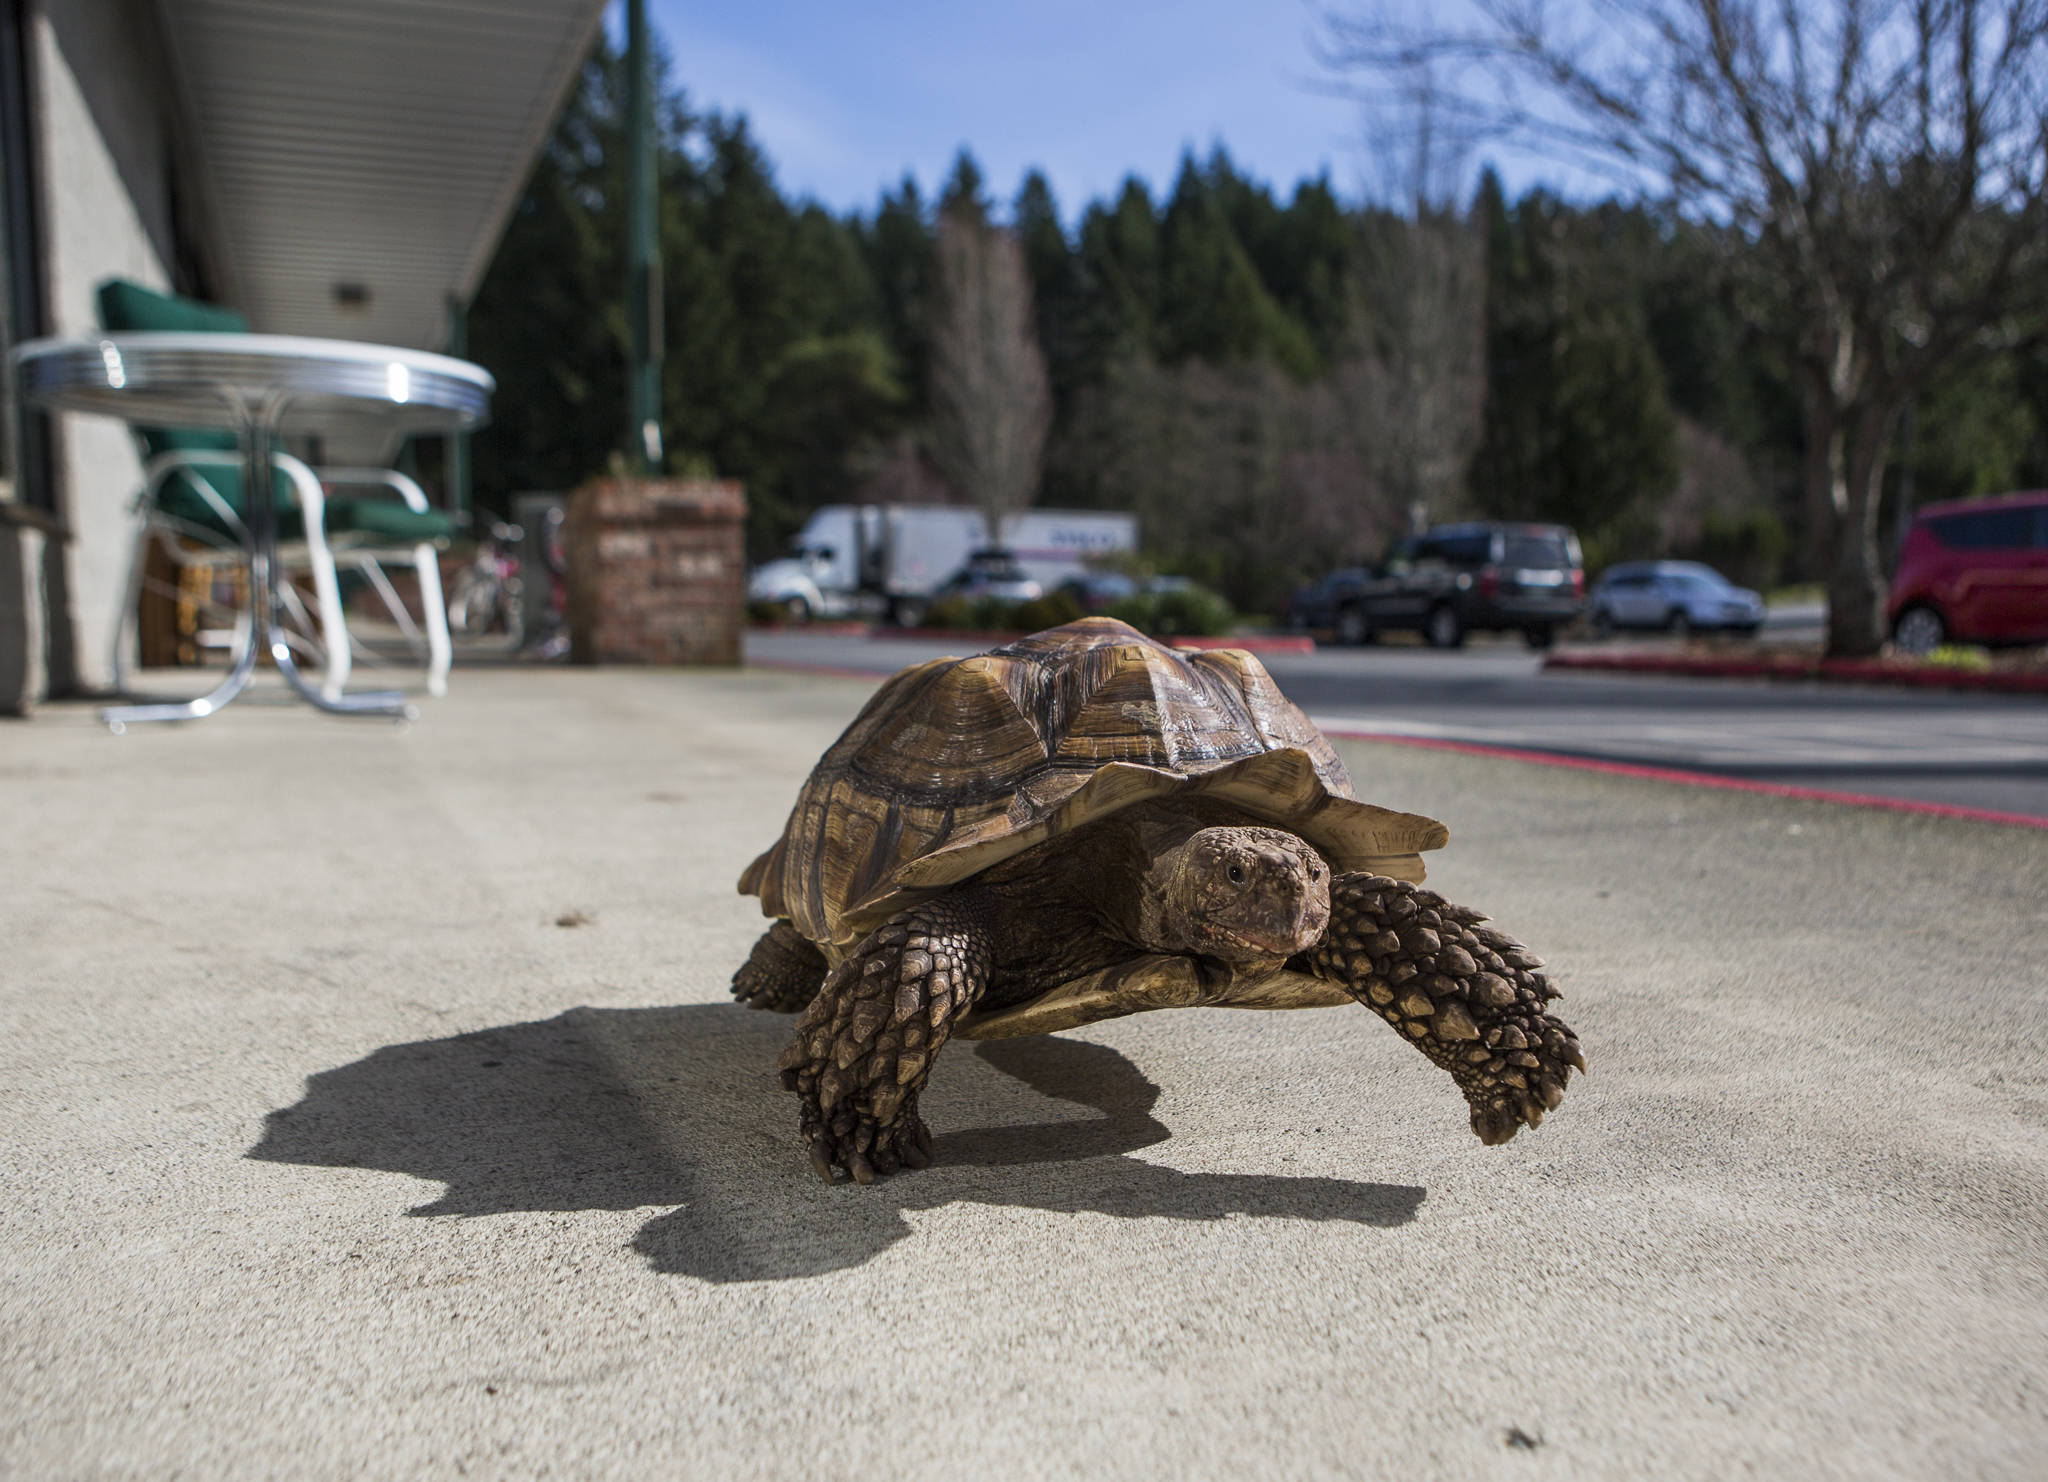 Raja, a 9-year-old rescued sulcata tortoise, makes his way along the sidewalk in front of Critters & Company Pet Center where he lives in Clinton. (Olivia Vanni / The Herald)